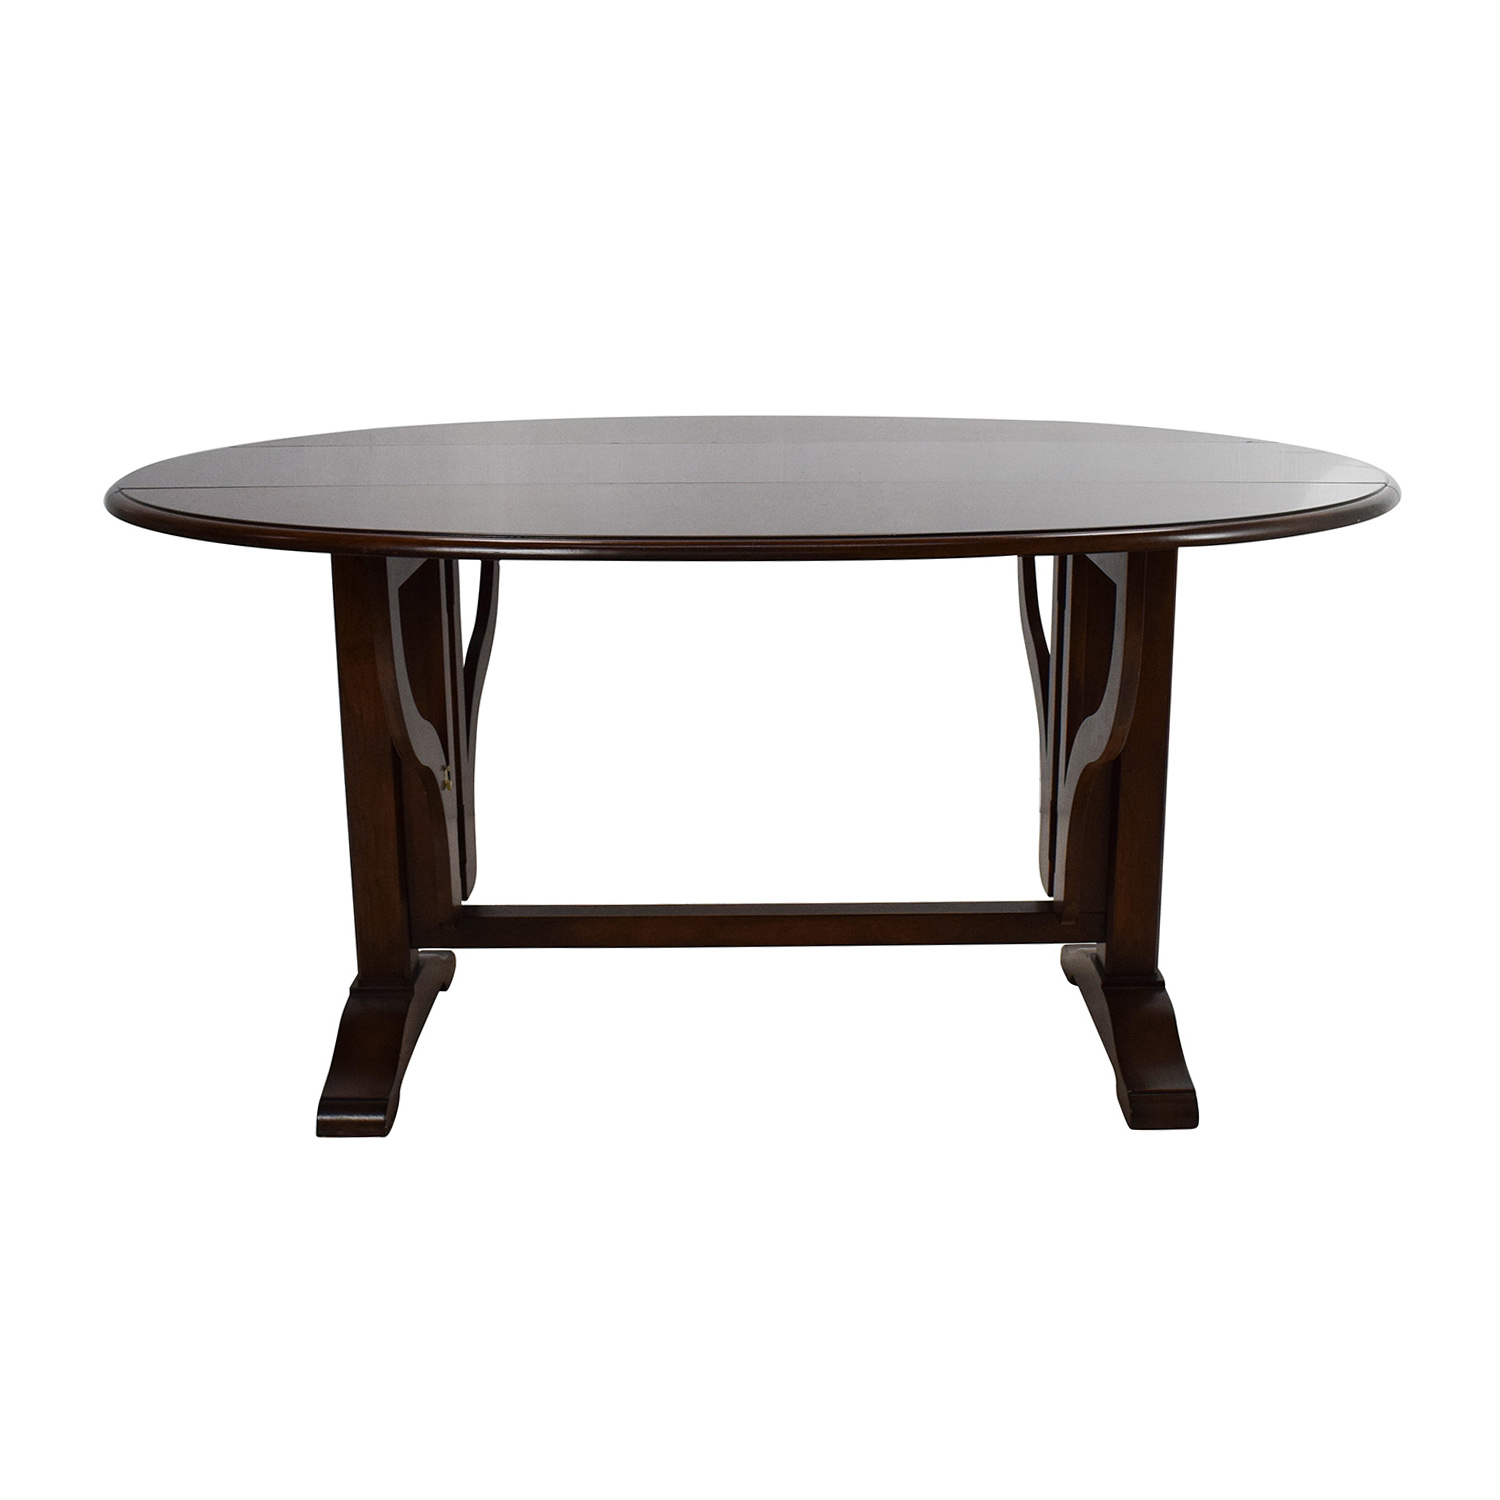 90 Off Door Foldable Round Dining Table Tables